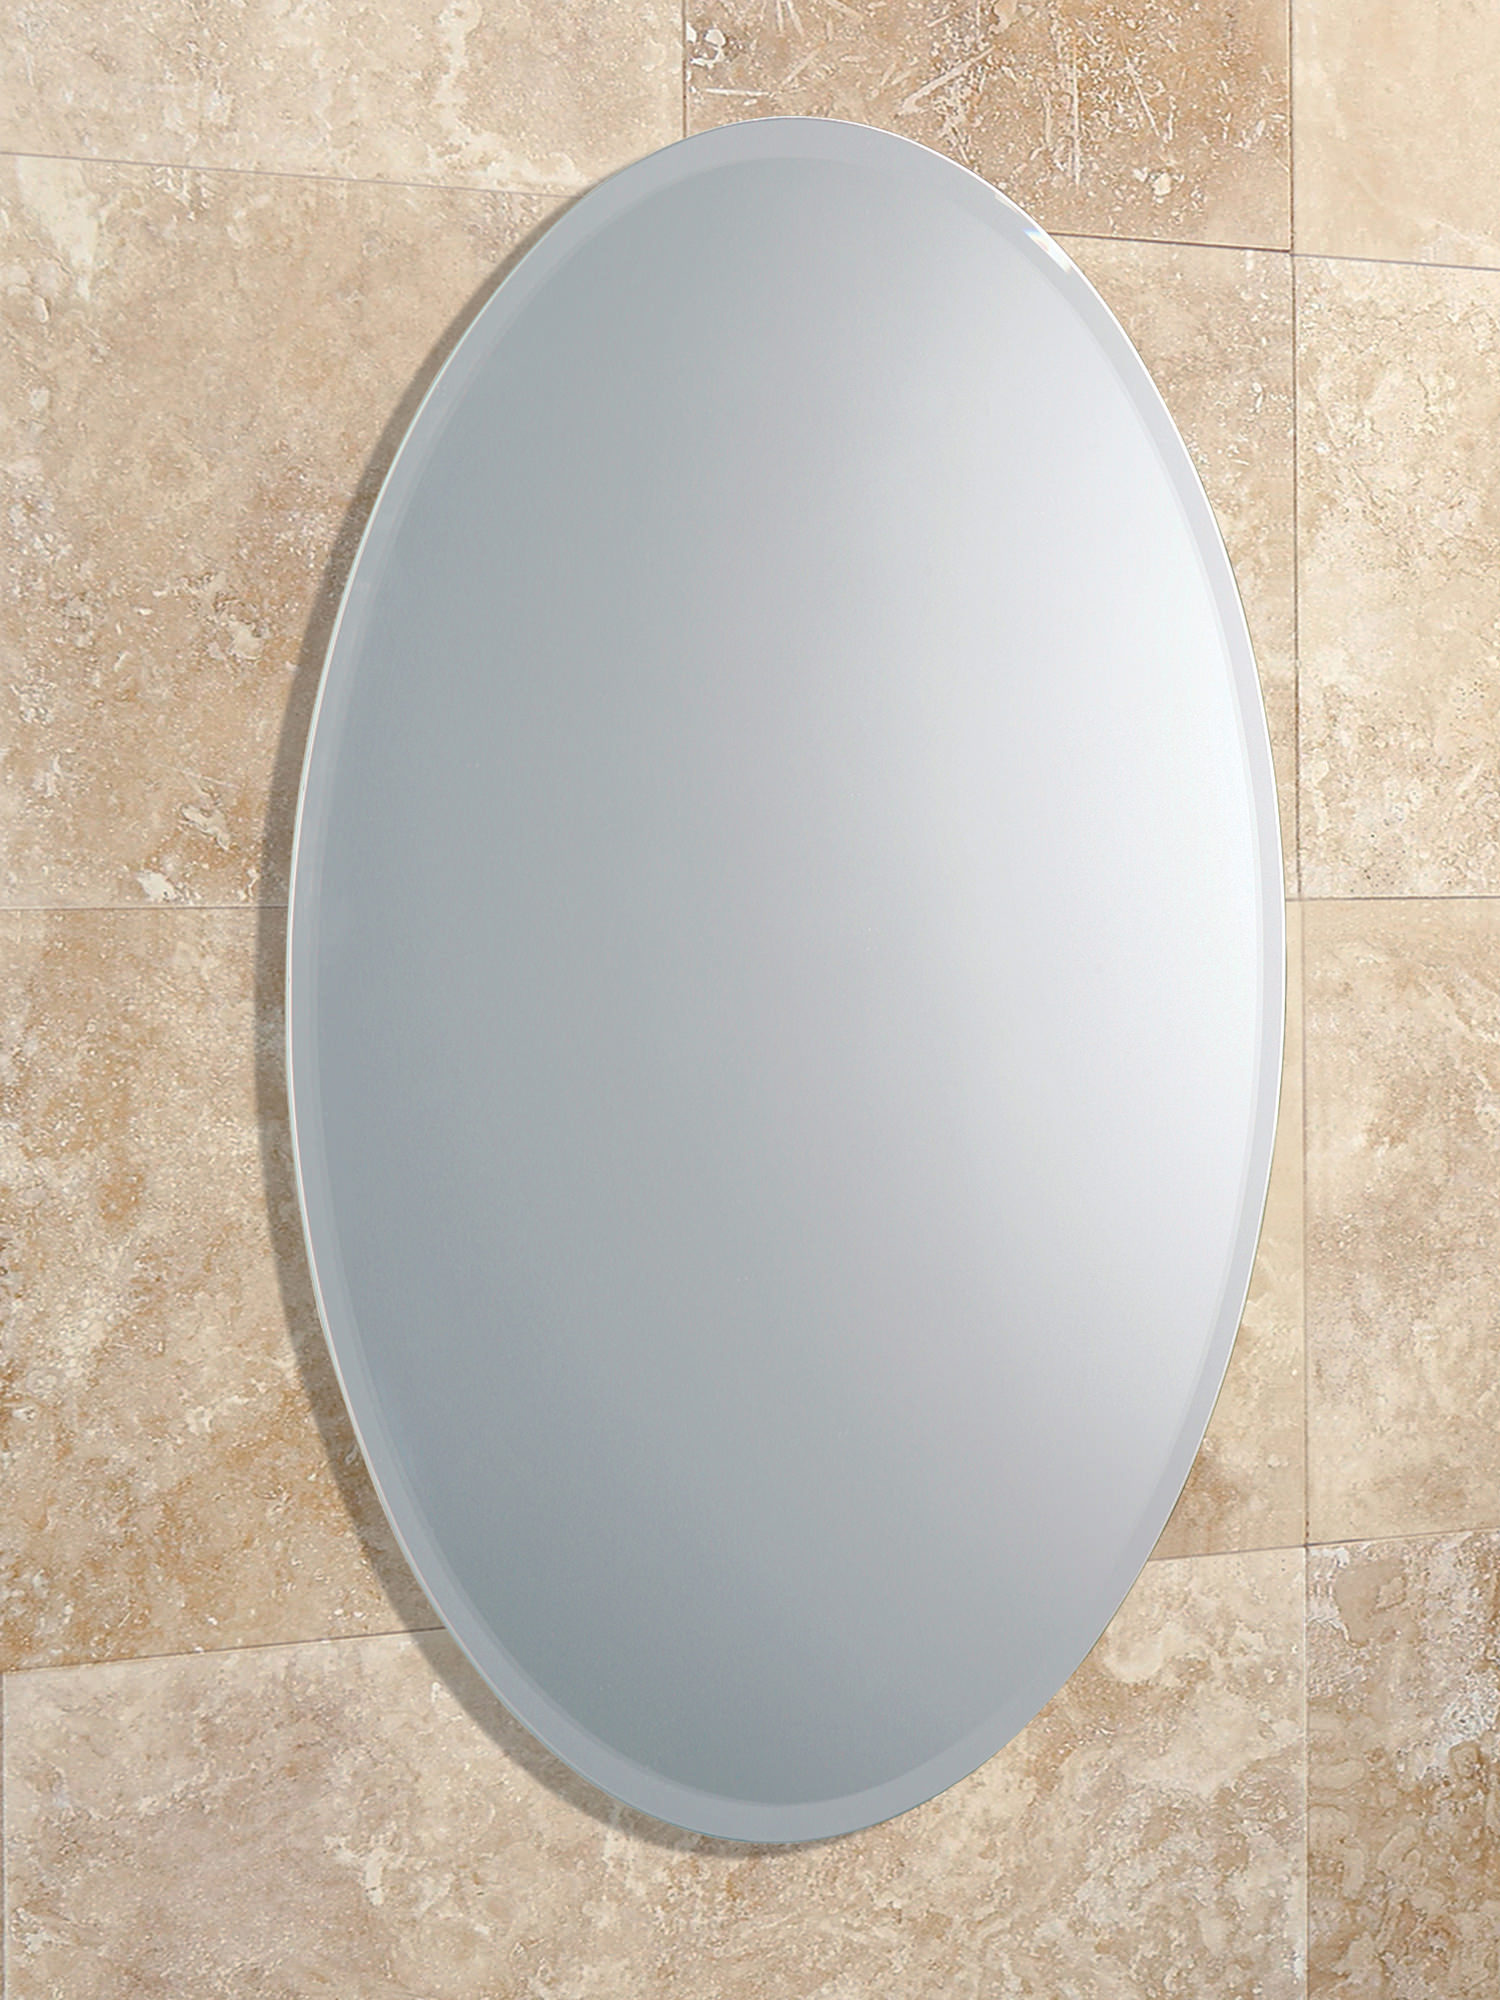 Luxury Oval Shaped Bathroom Mirror With Beveled Edge View Oval Shaped Mirror